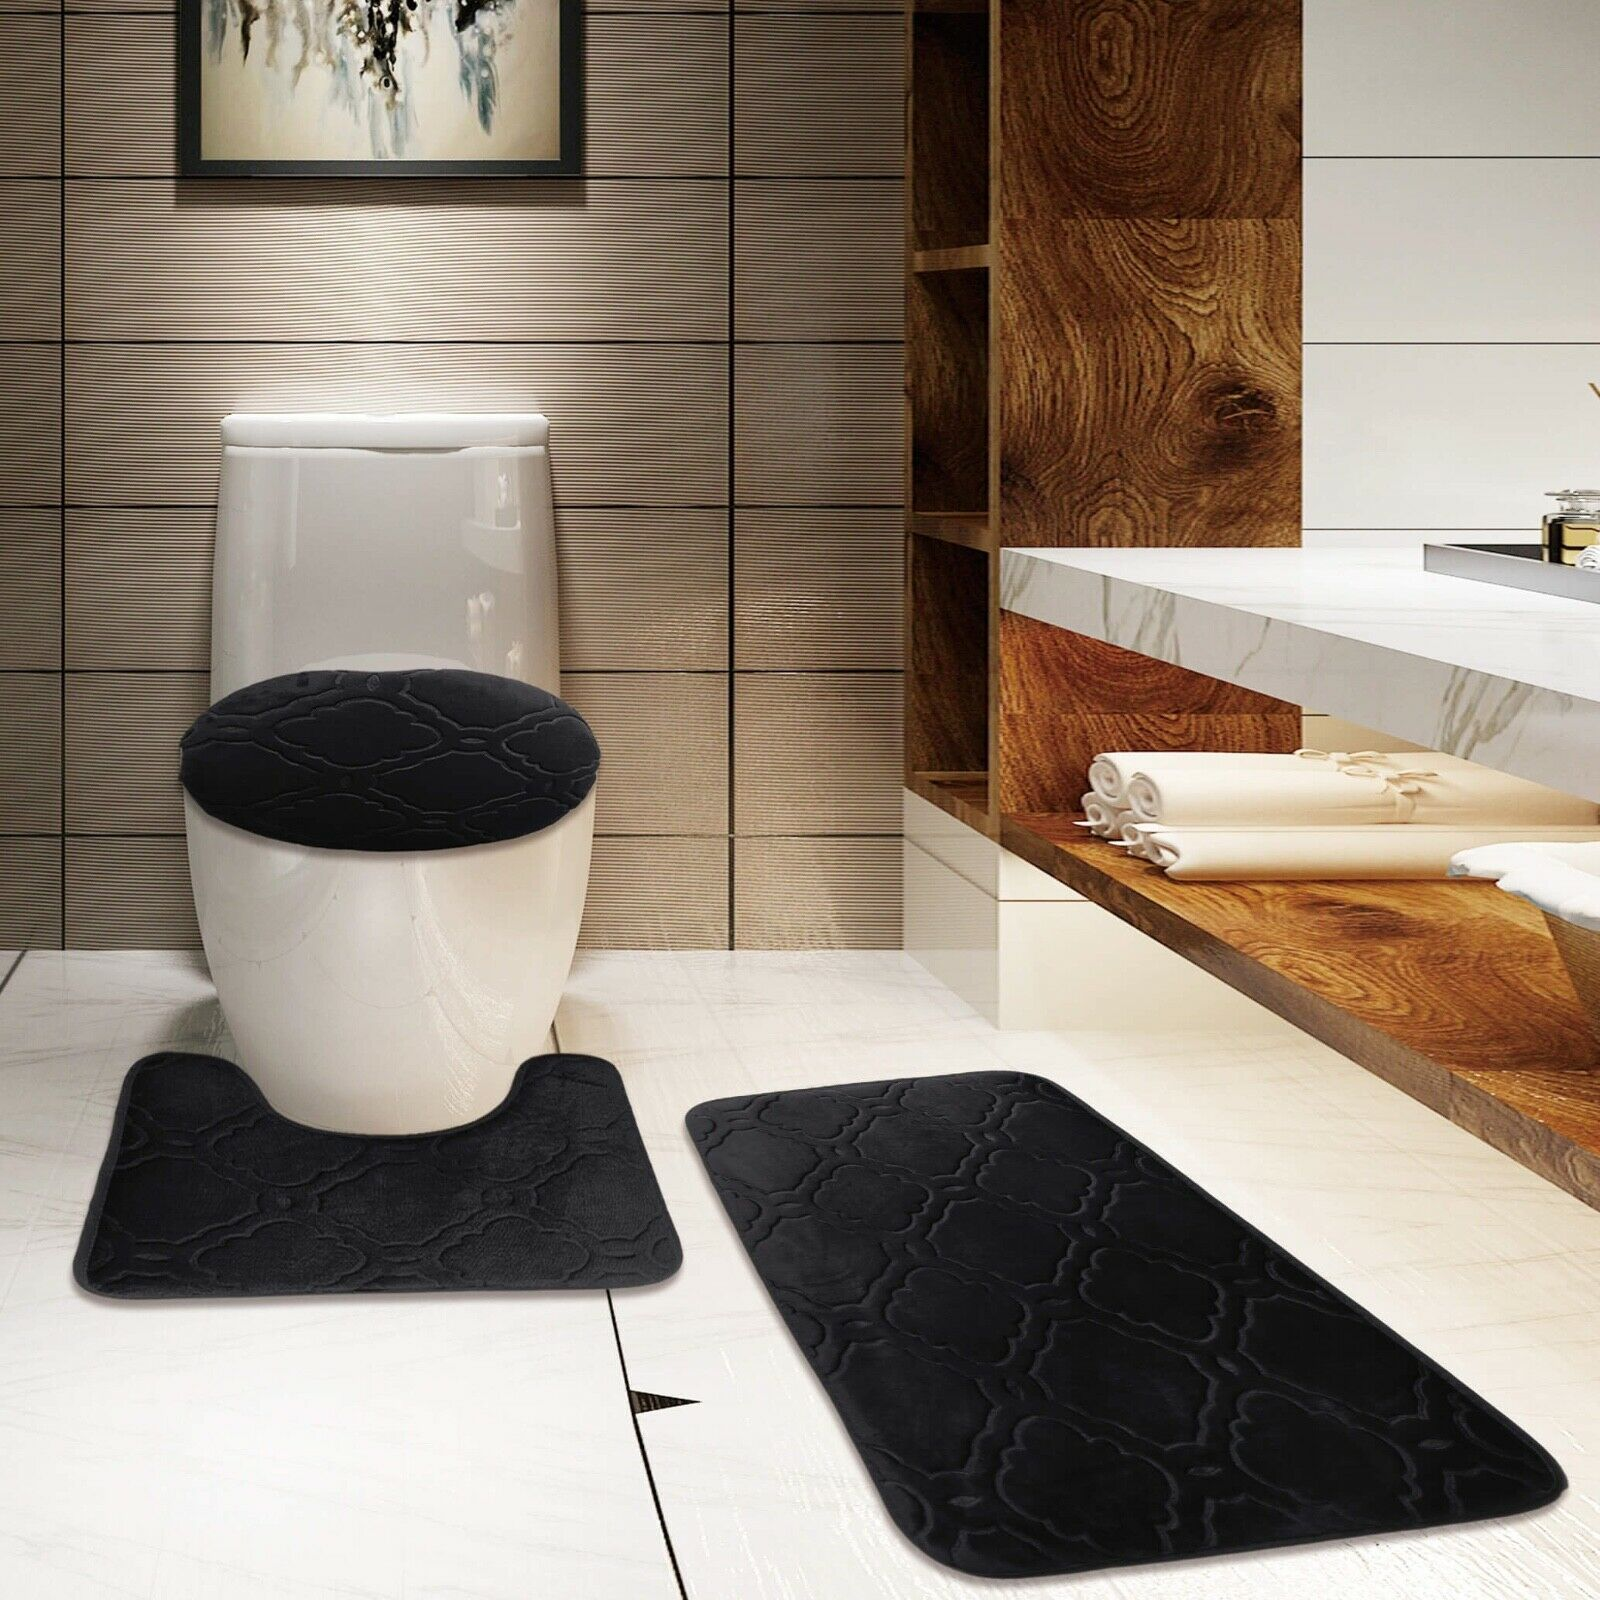 NEW BEAUTIFUL BATHROOM SET BANDED BATH MAT COUNTOUR RUG LID COVER #7 STRIPE